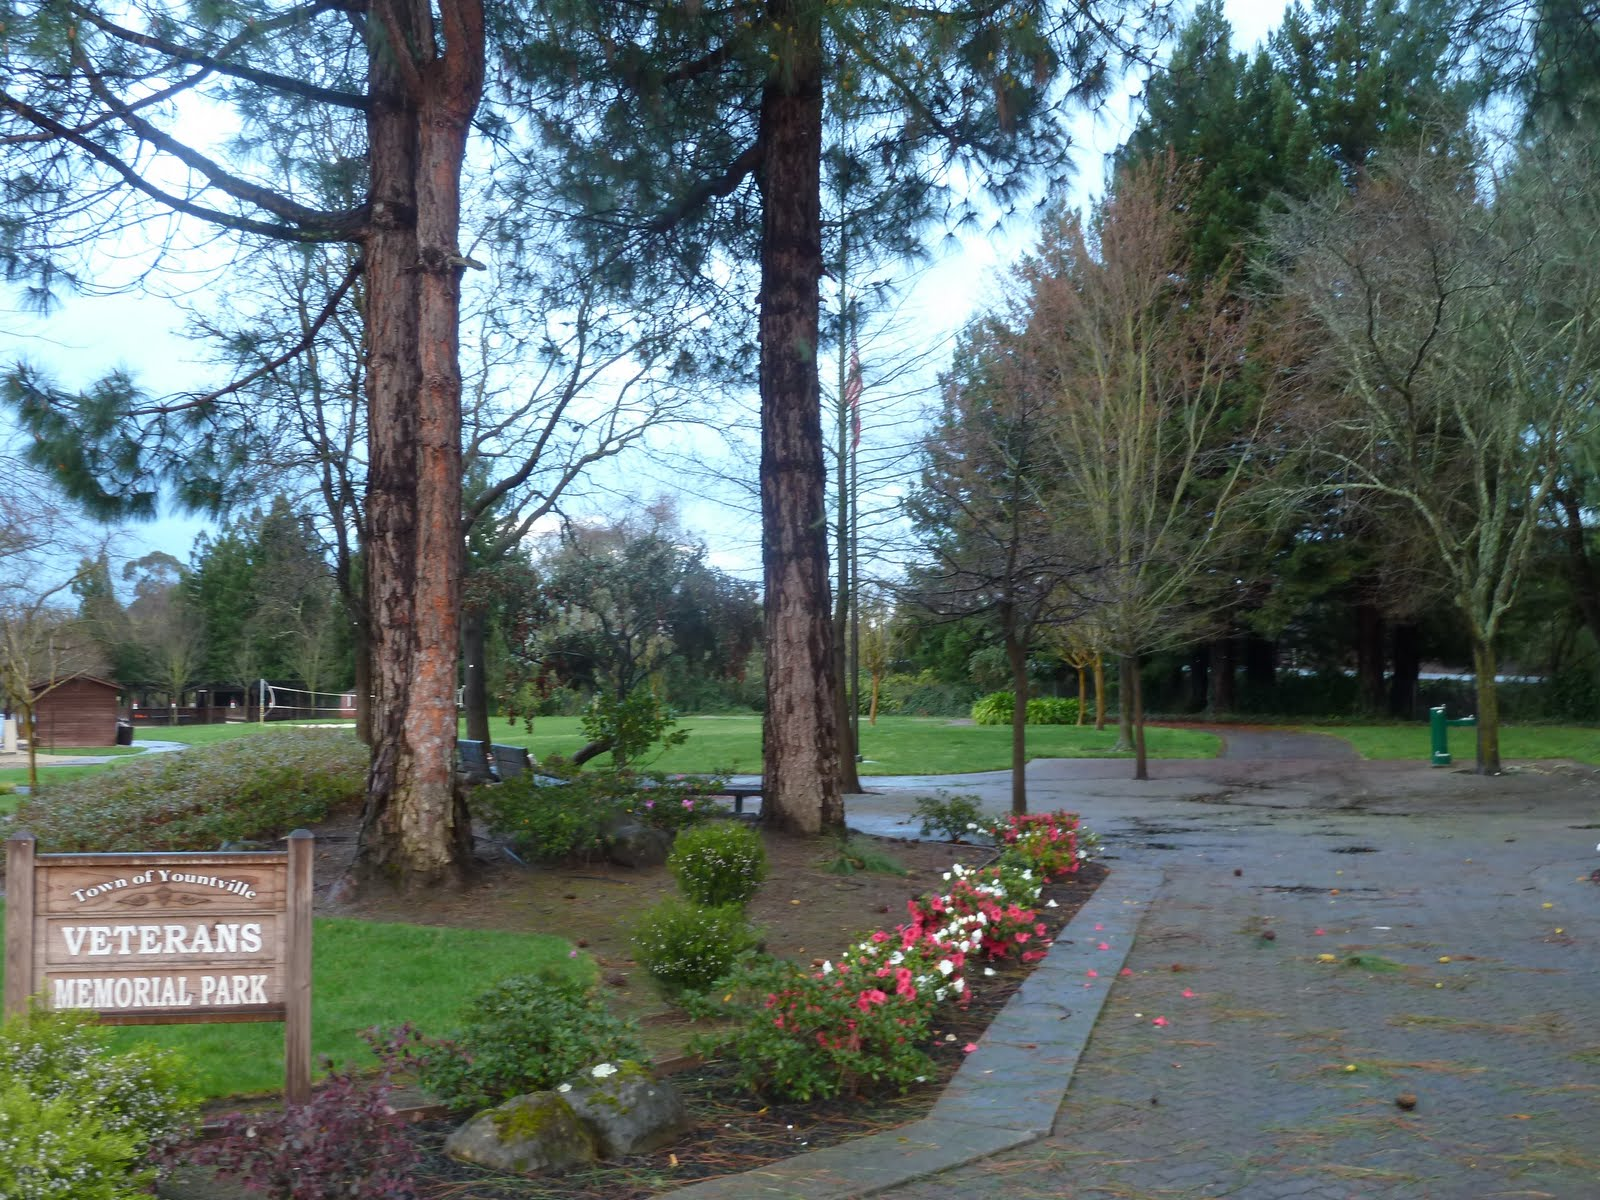 After Walking A Couple Miles North From NAPA Noe Offered Me Ride To Yountsville He Let Out At Veterans Memorial Park